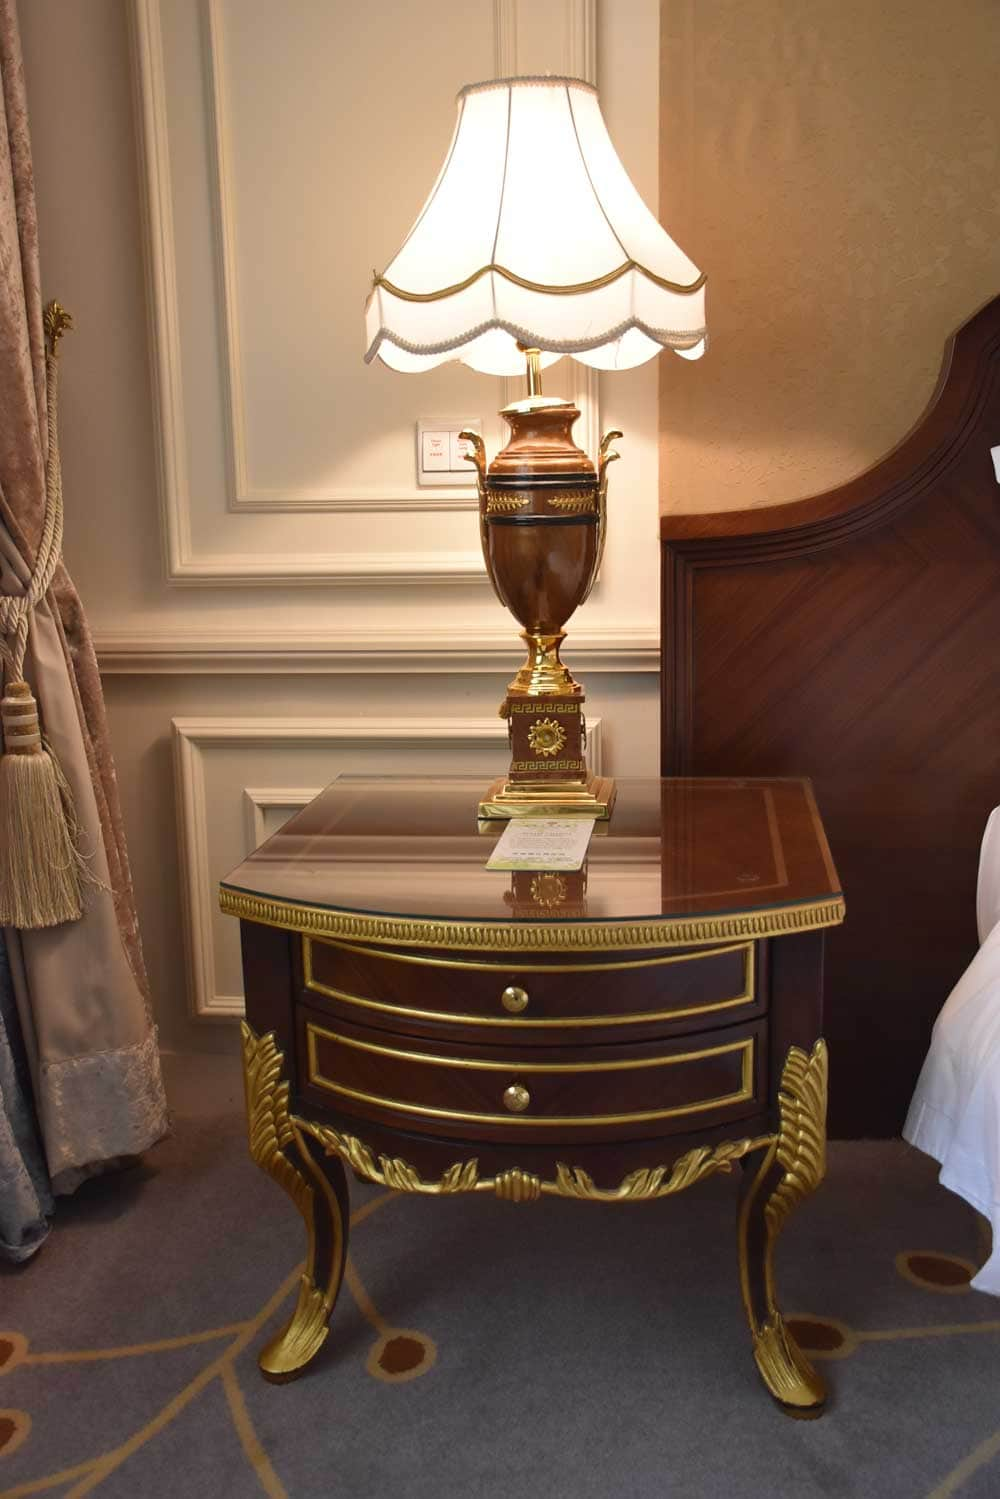 New Orient Landmark Deluxe Room bed table and chair